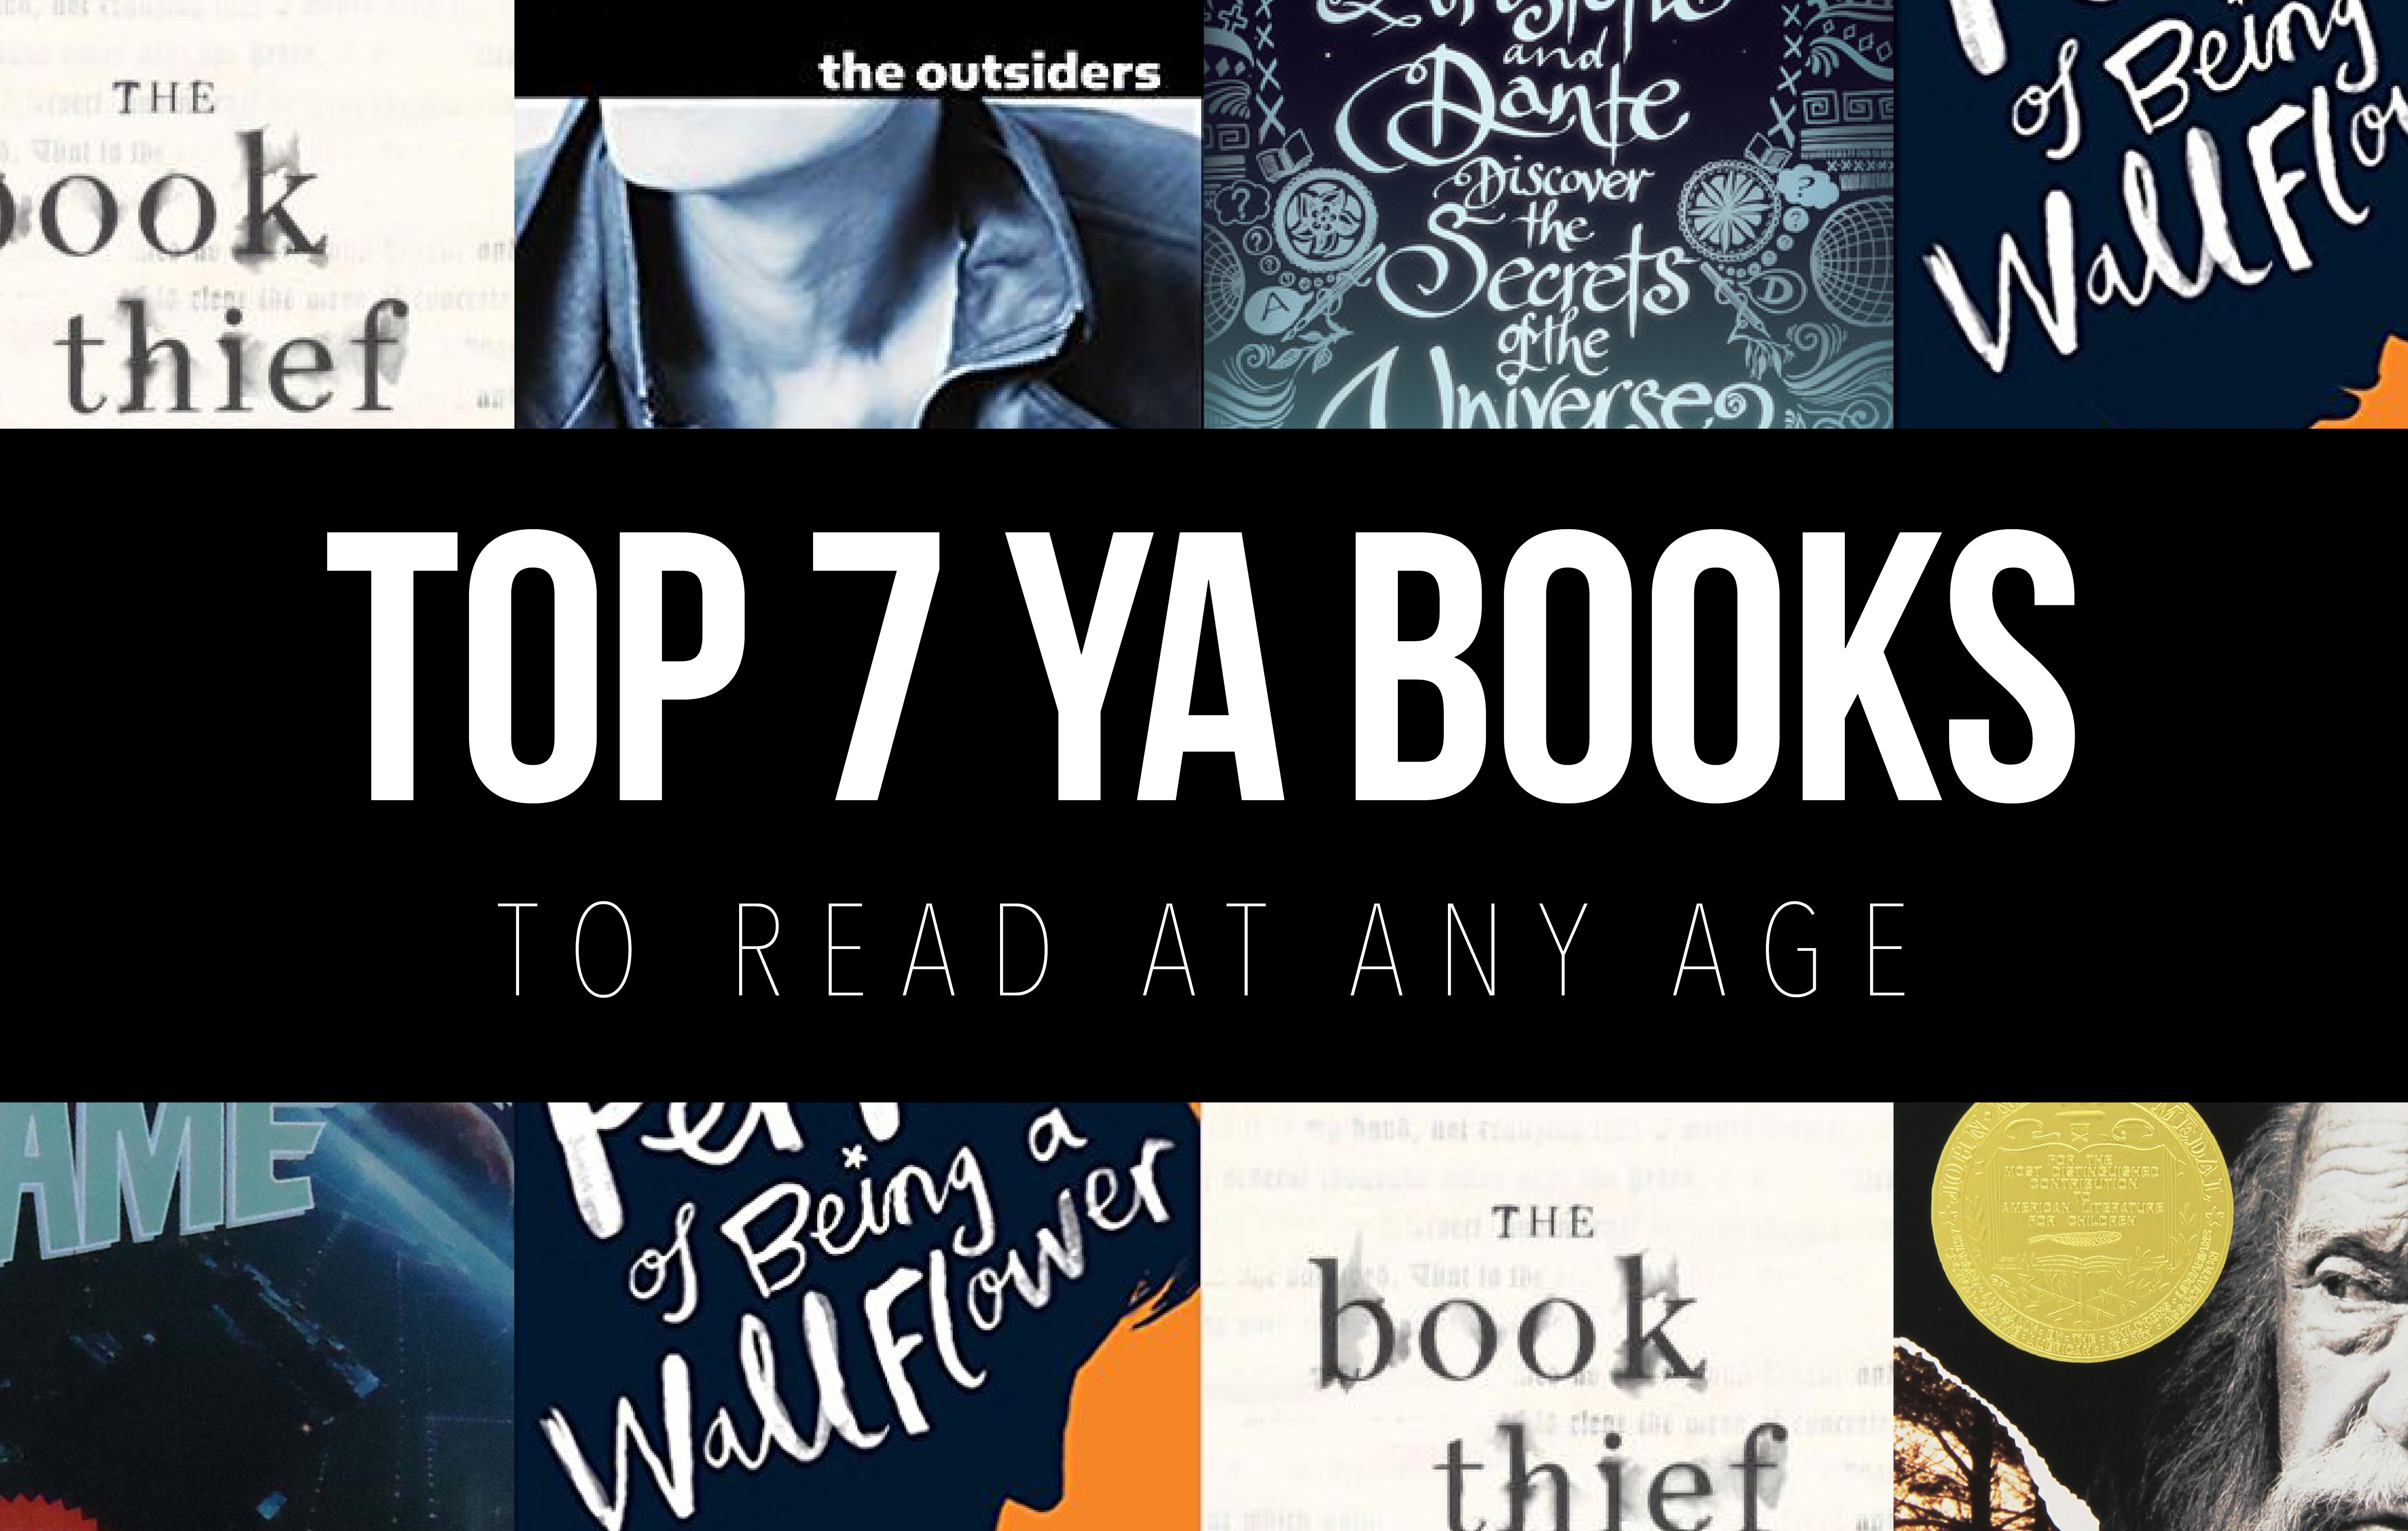 TOP 7 YA BOOKS TO READ AT ANY AGE